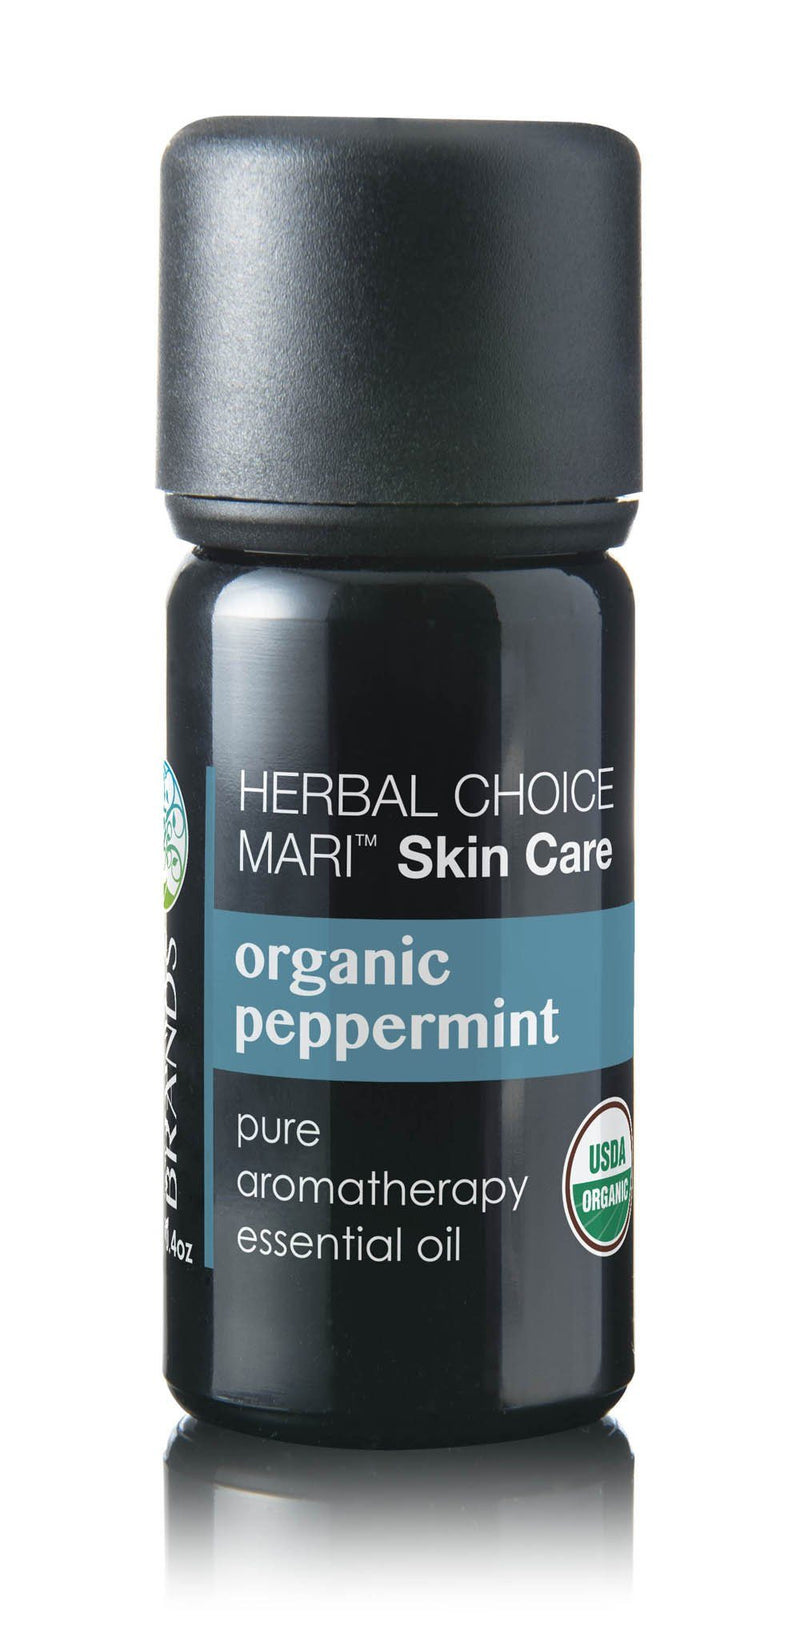 Herbal Choice Mari Organic Peppermint Essential Oil; 0.3floz Glass - Herbal Choice Mari Organic Peppermint Essential Oil; 0.3floz Glass - Herbal Choice Mari Organic Peppermint Essential Oil; 0.3floz Glass